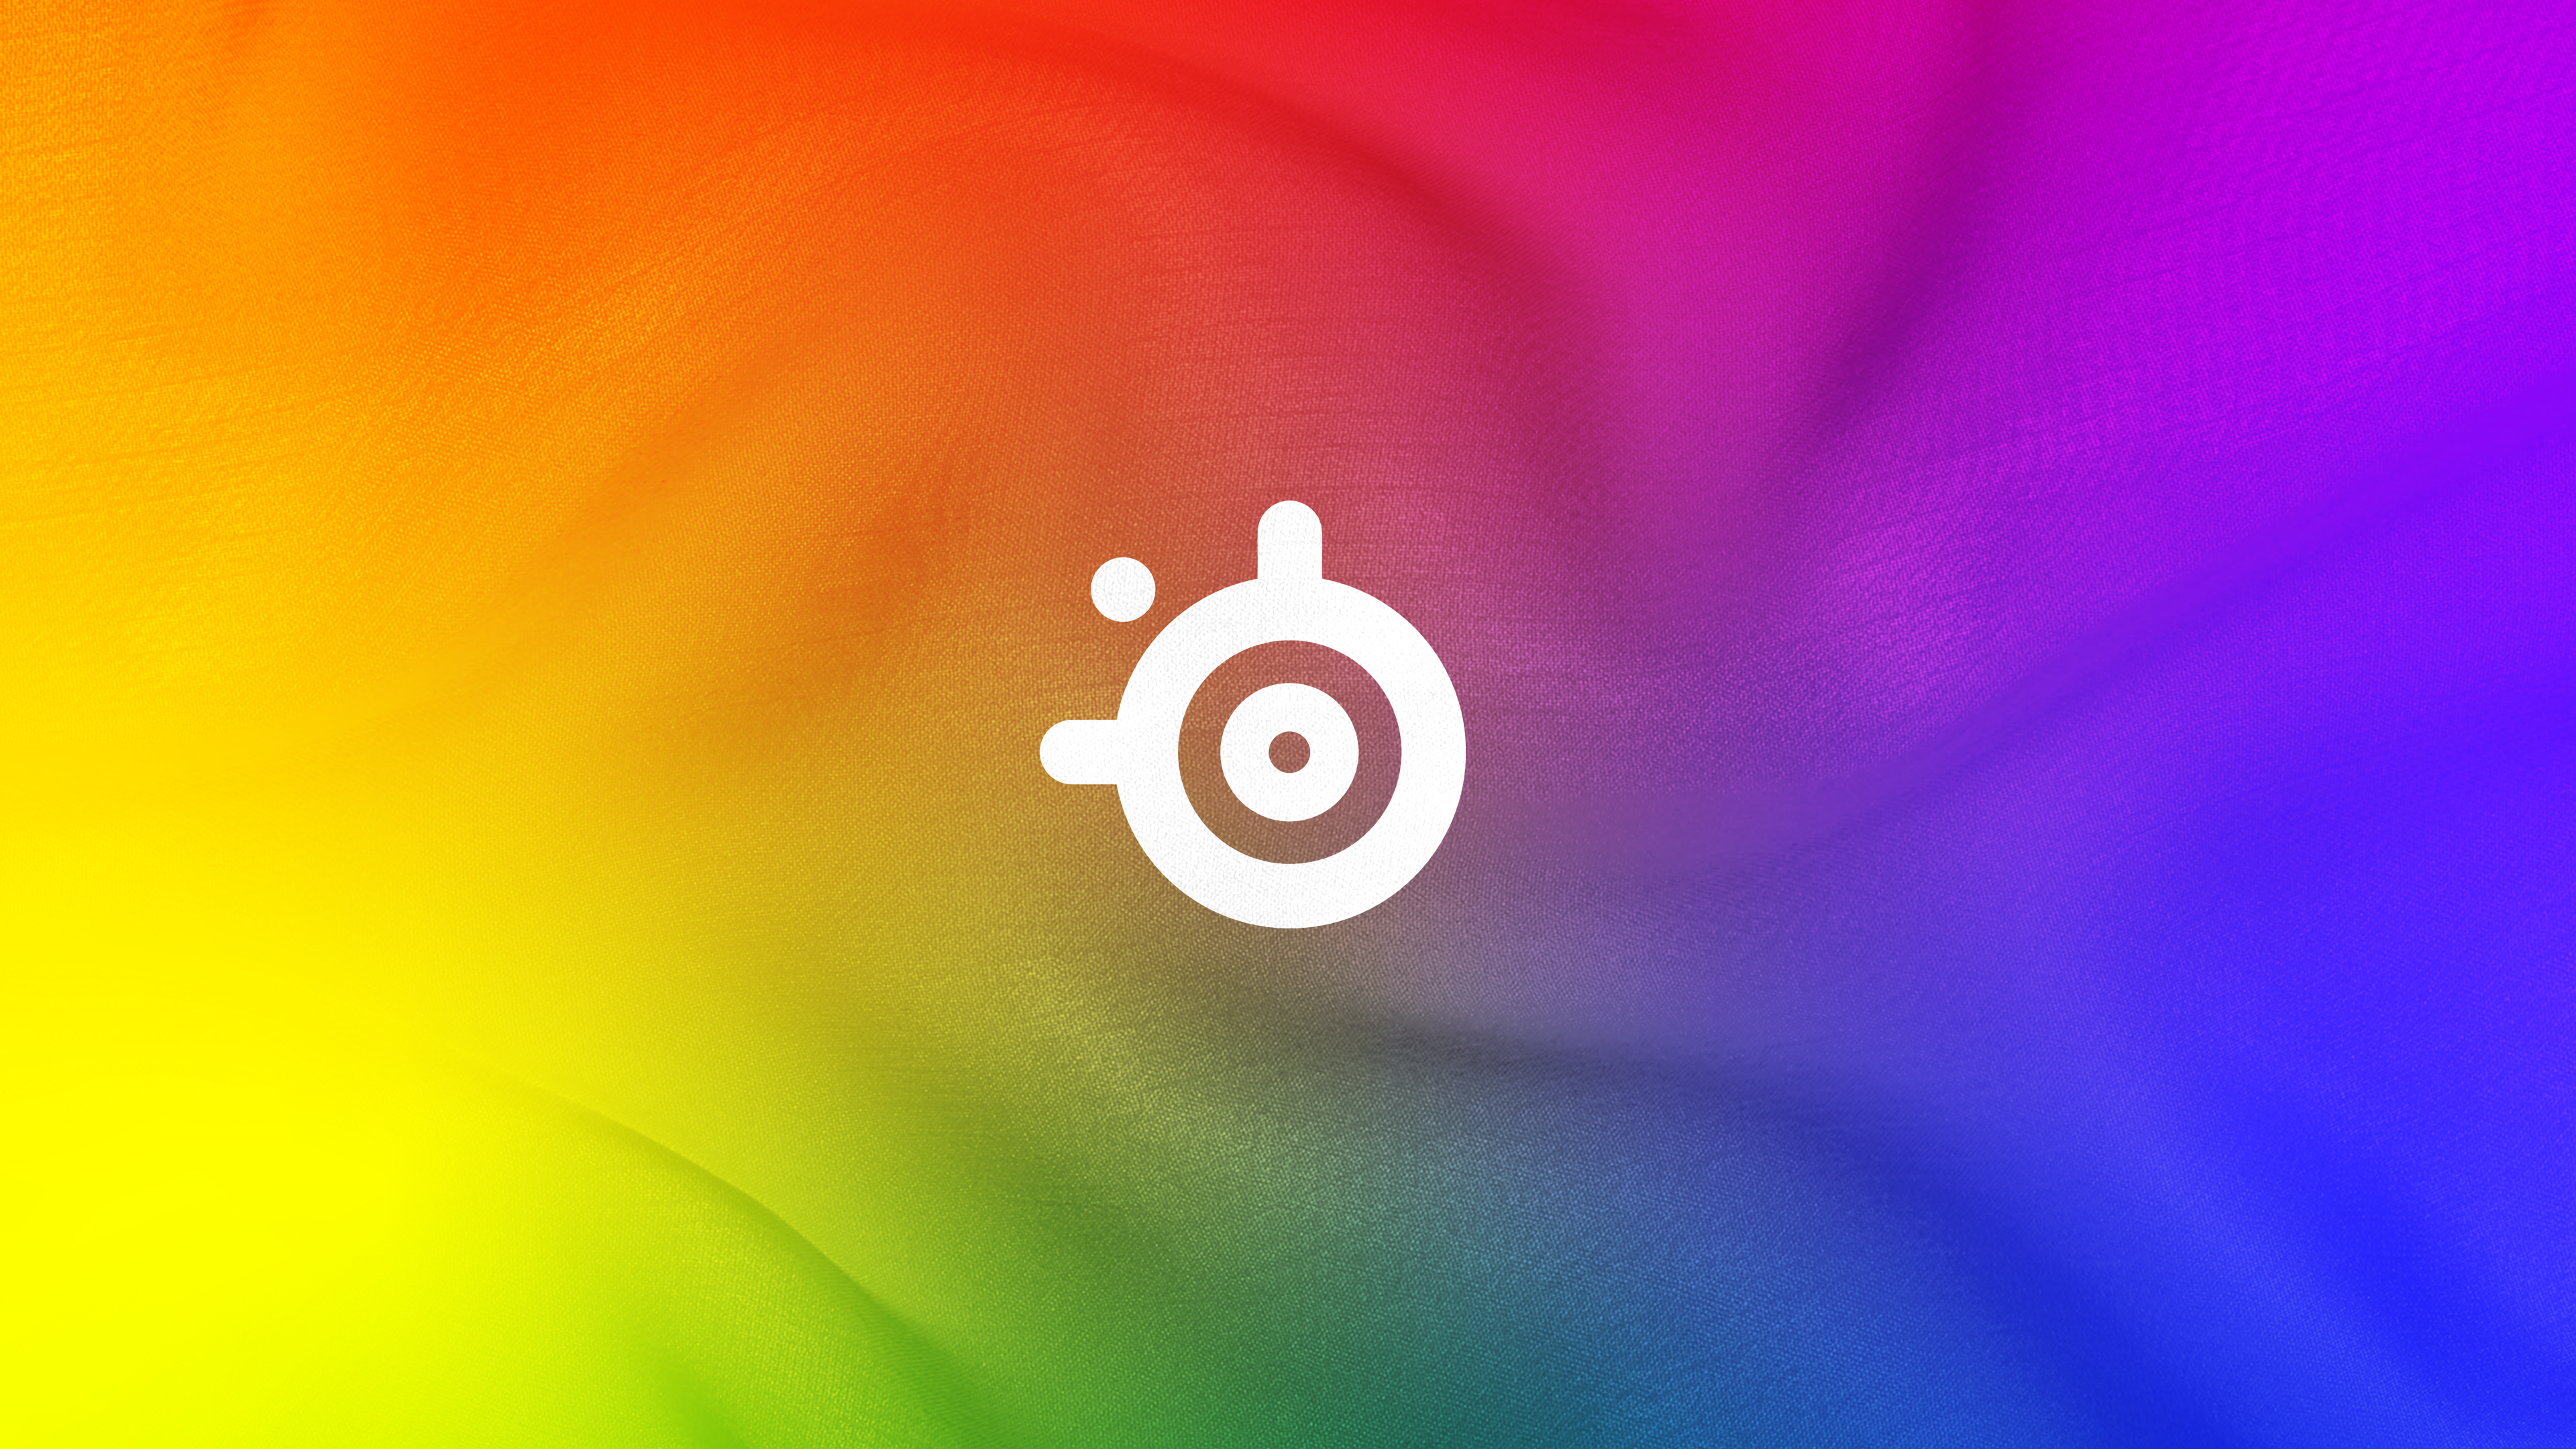 SteelSeries logo on a rainbow background